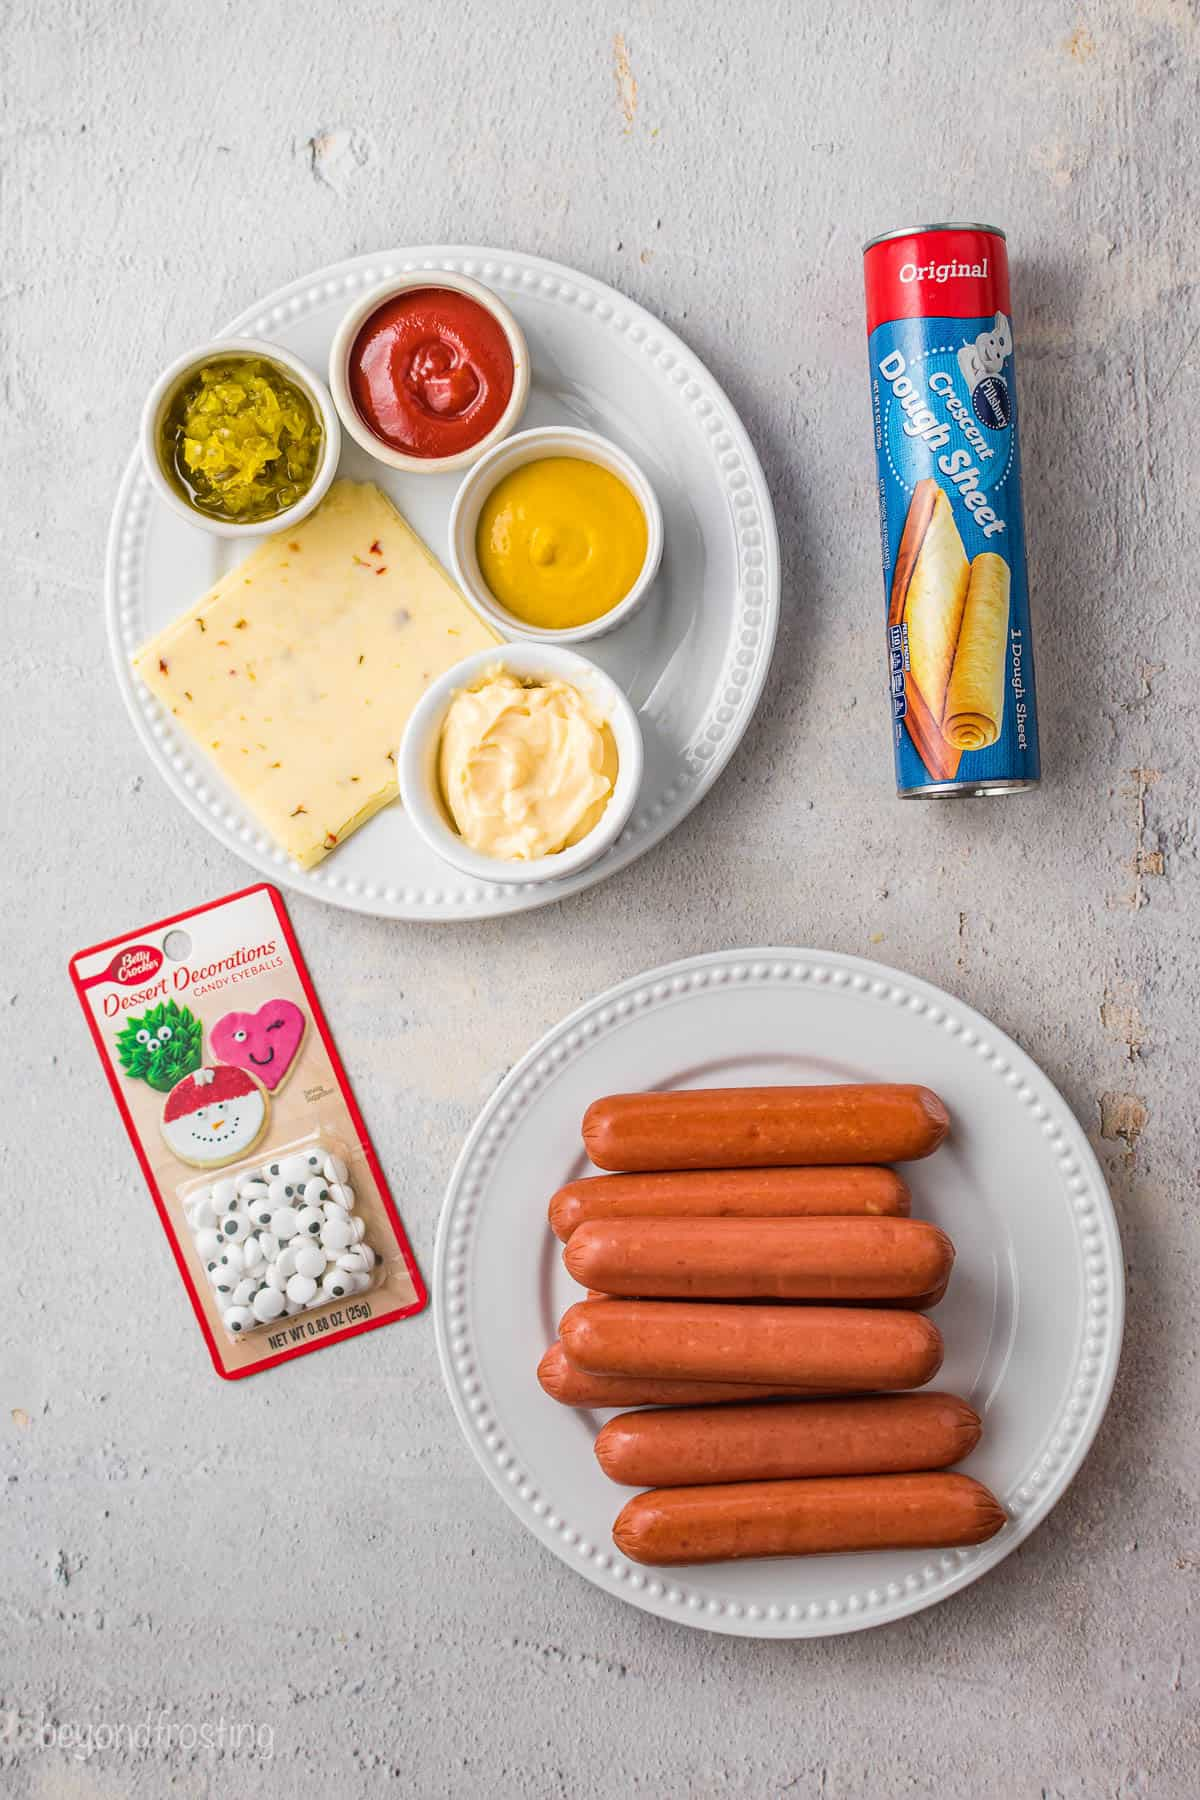 A package of candy eyes, a plate of hot dogs and the rest of the mummy dog and spooky dip ingredients on a gray surface